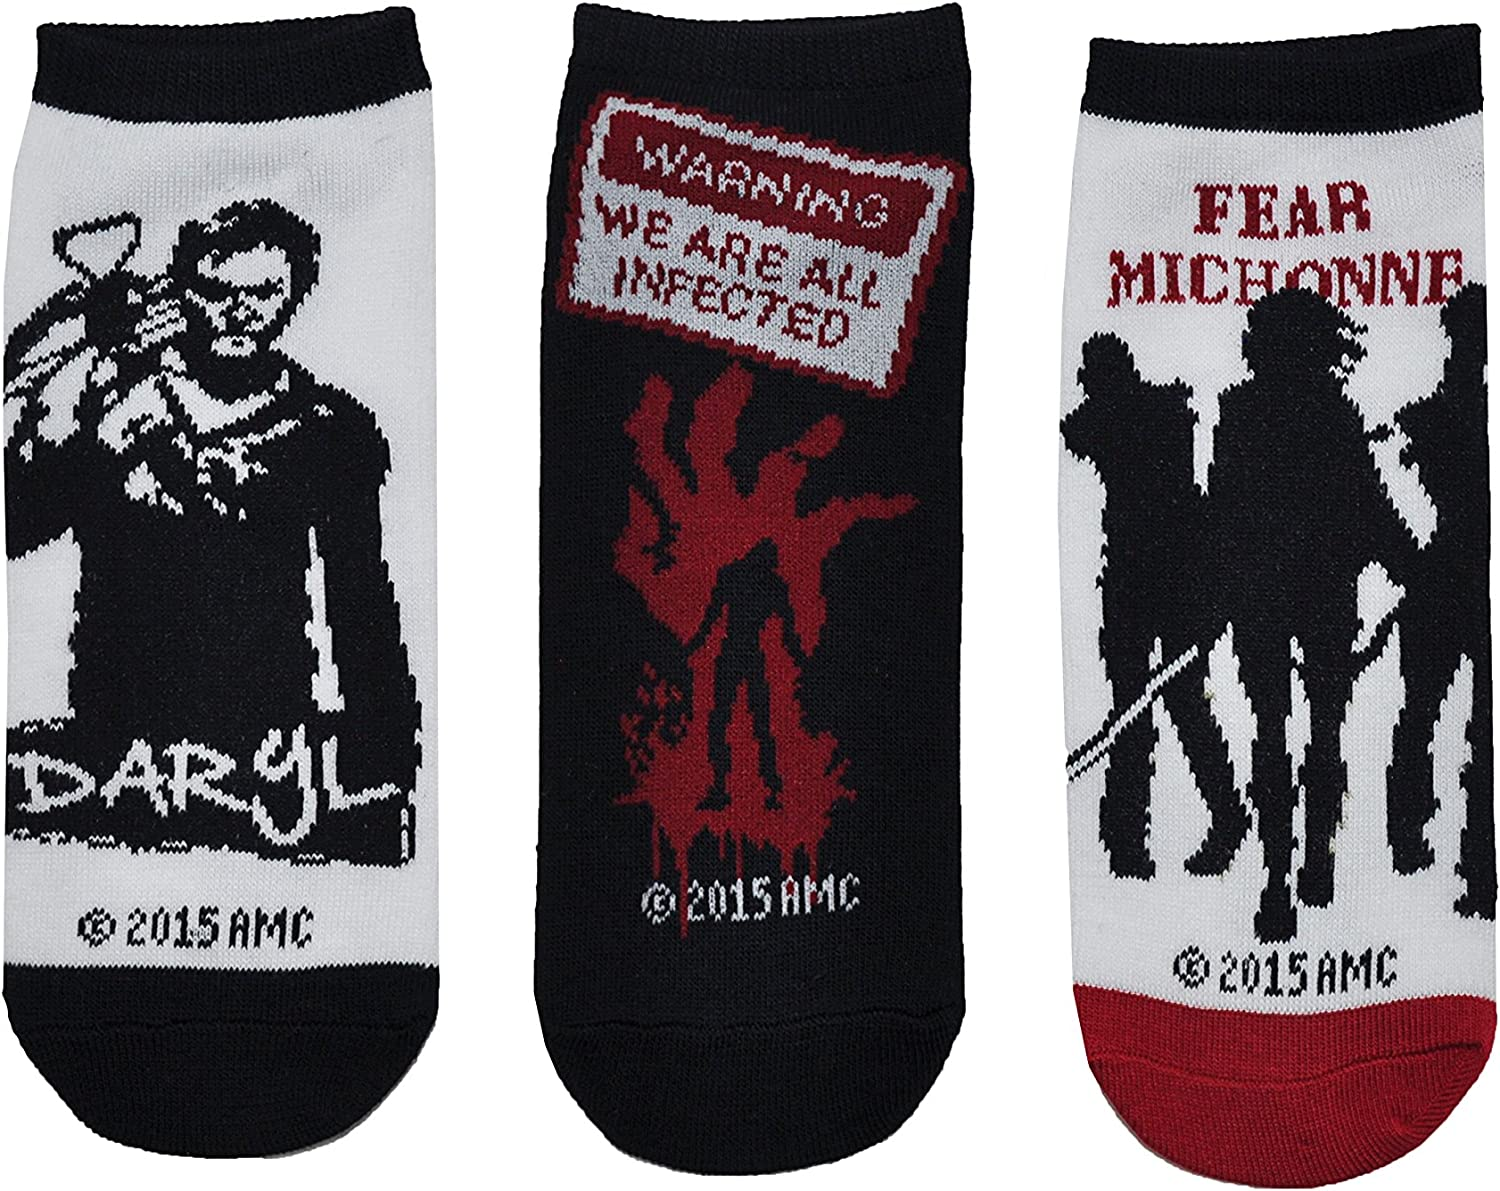 Amazon.com: The Walking Dead calcetines de corte bajo (6 ...